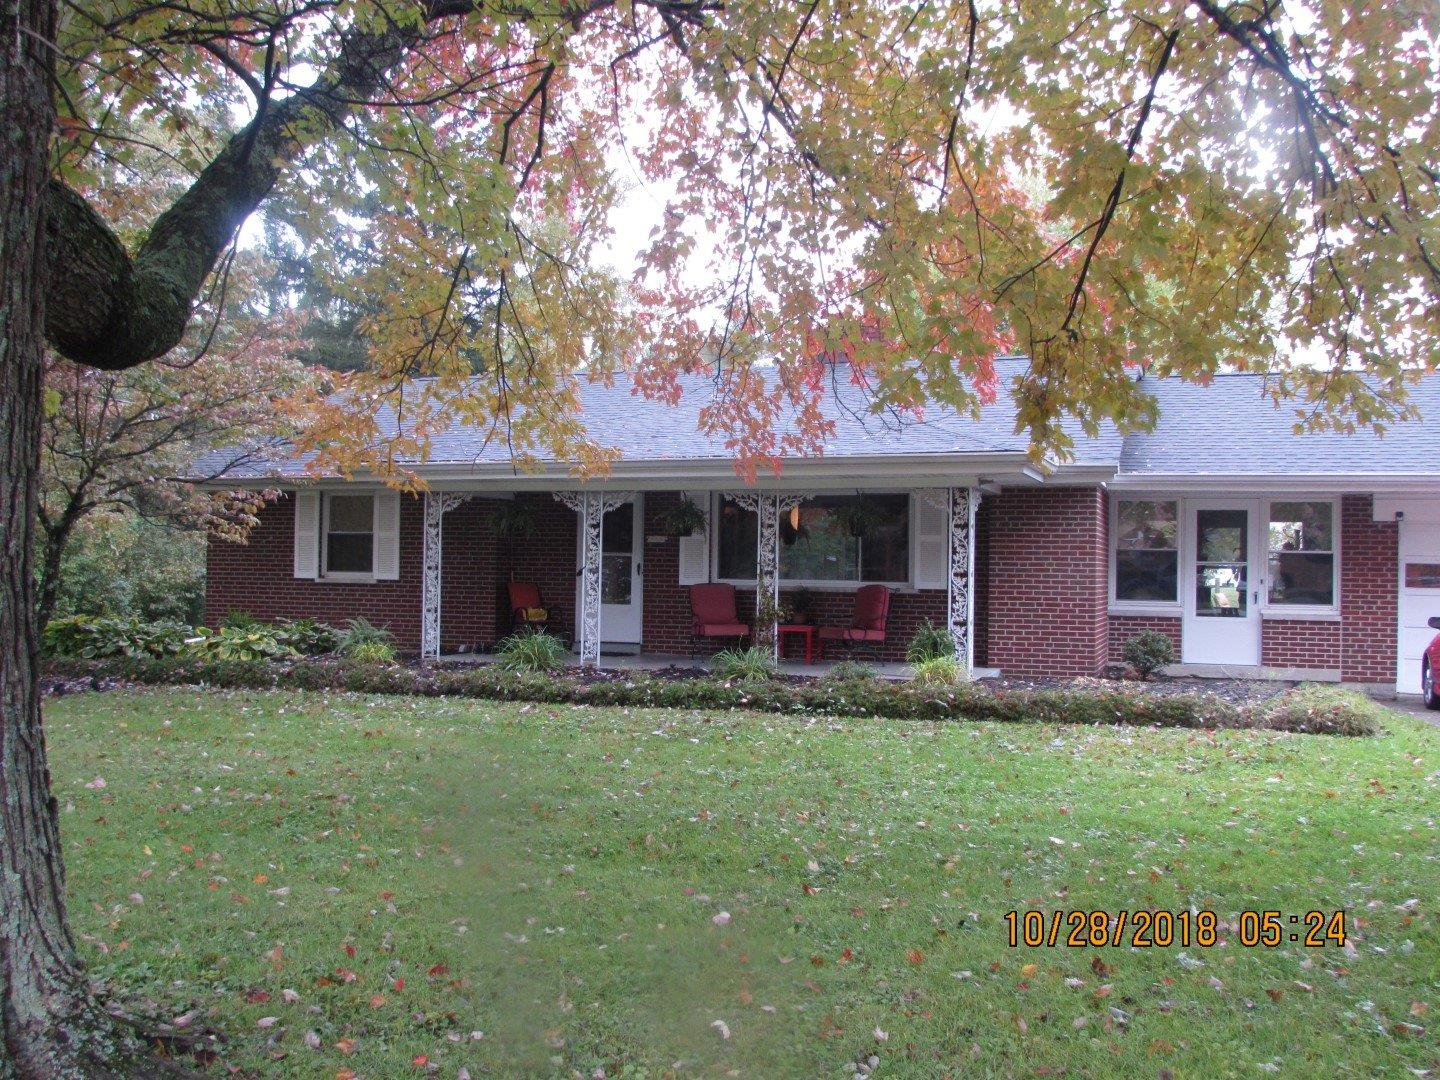 Property for sale at 7875 S St Rt 48, Hamilton Twp,  OH 45039